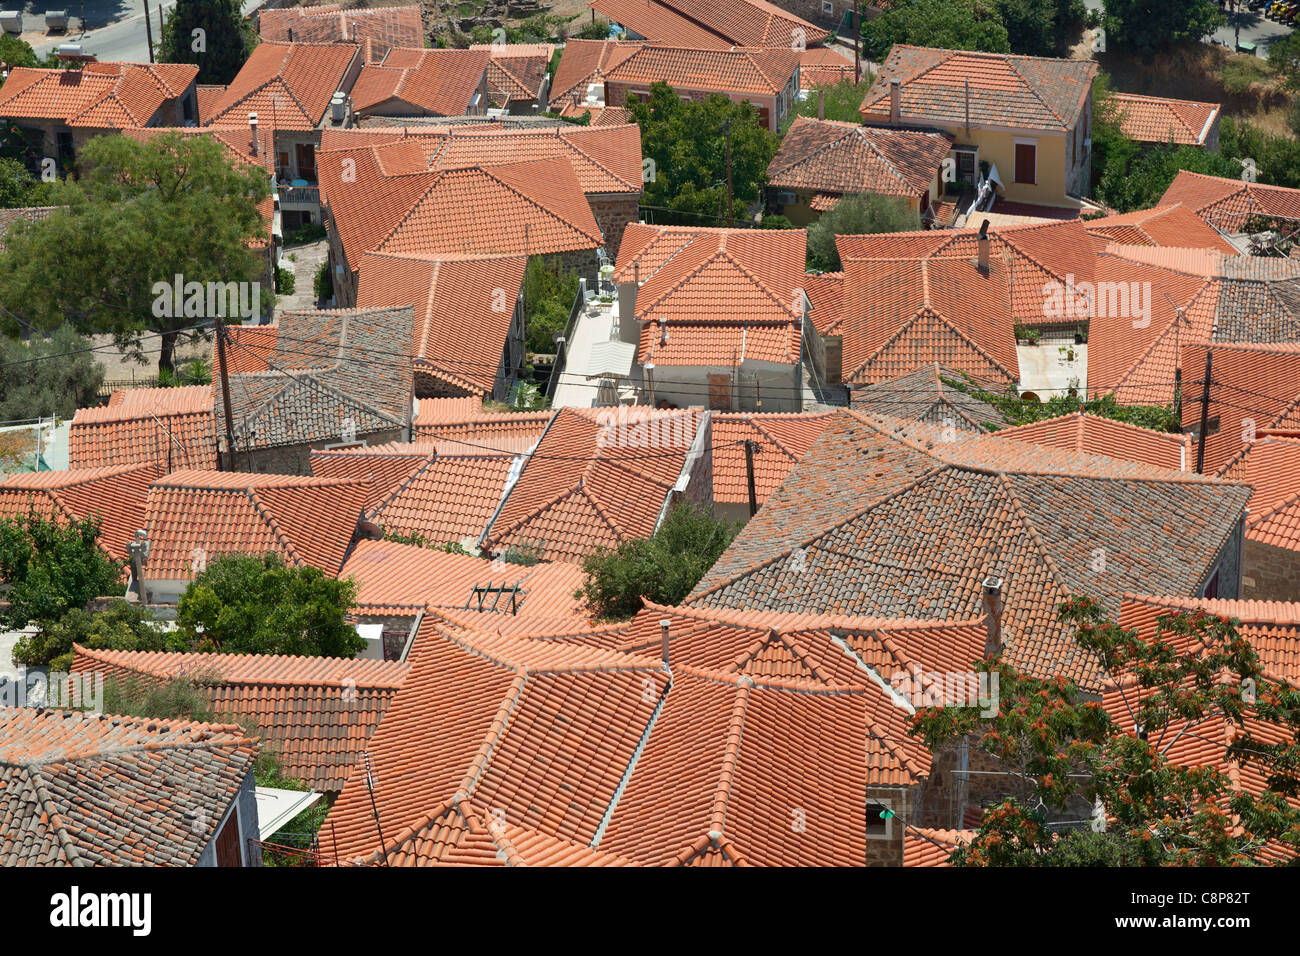 Terracota tiled rooftops of the city Mithymna, Lesbos, Greece - Stock Image